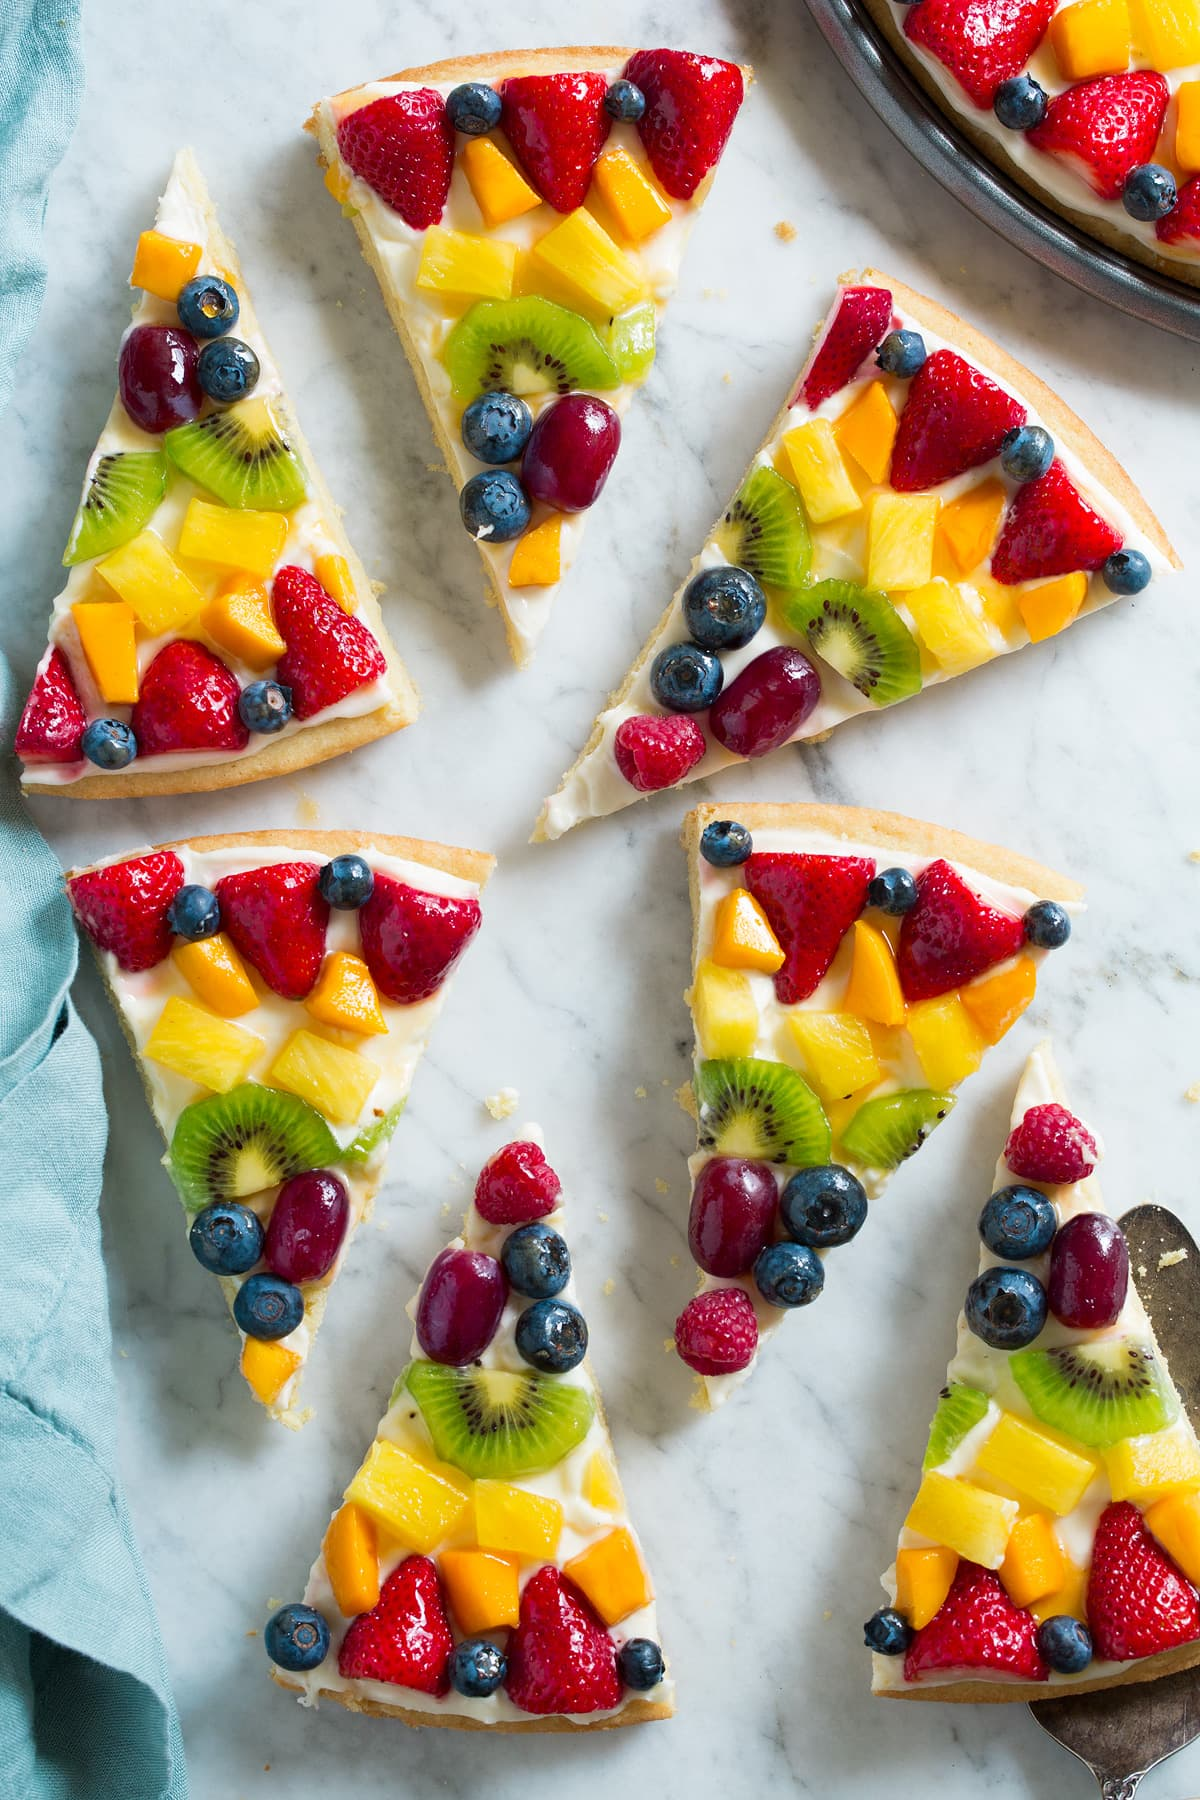 Slices of fruit pizza on a marble surface.